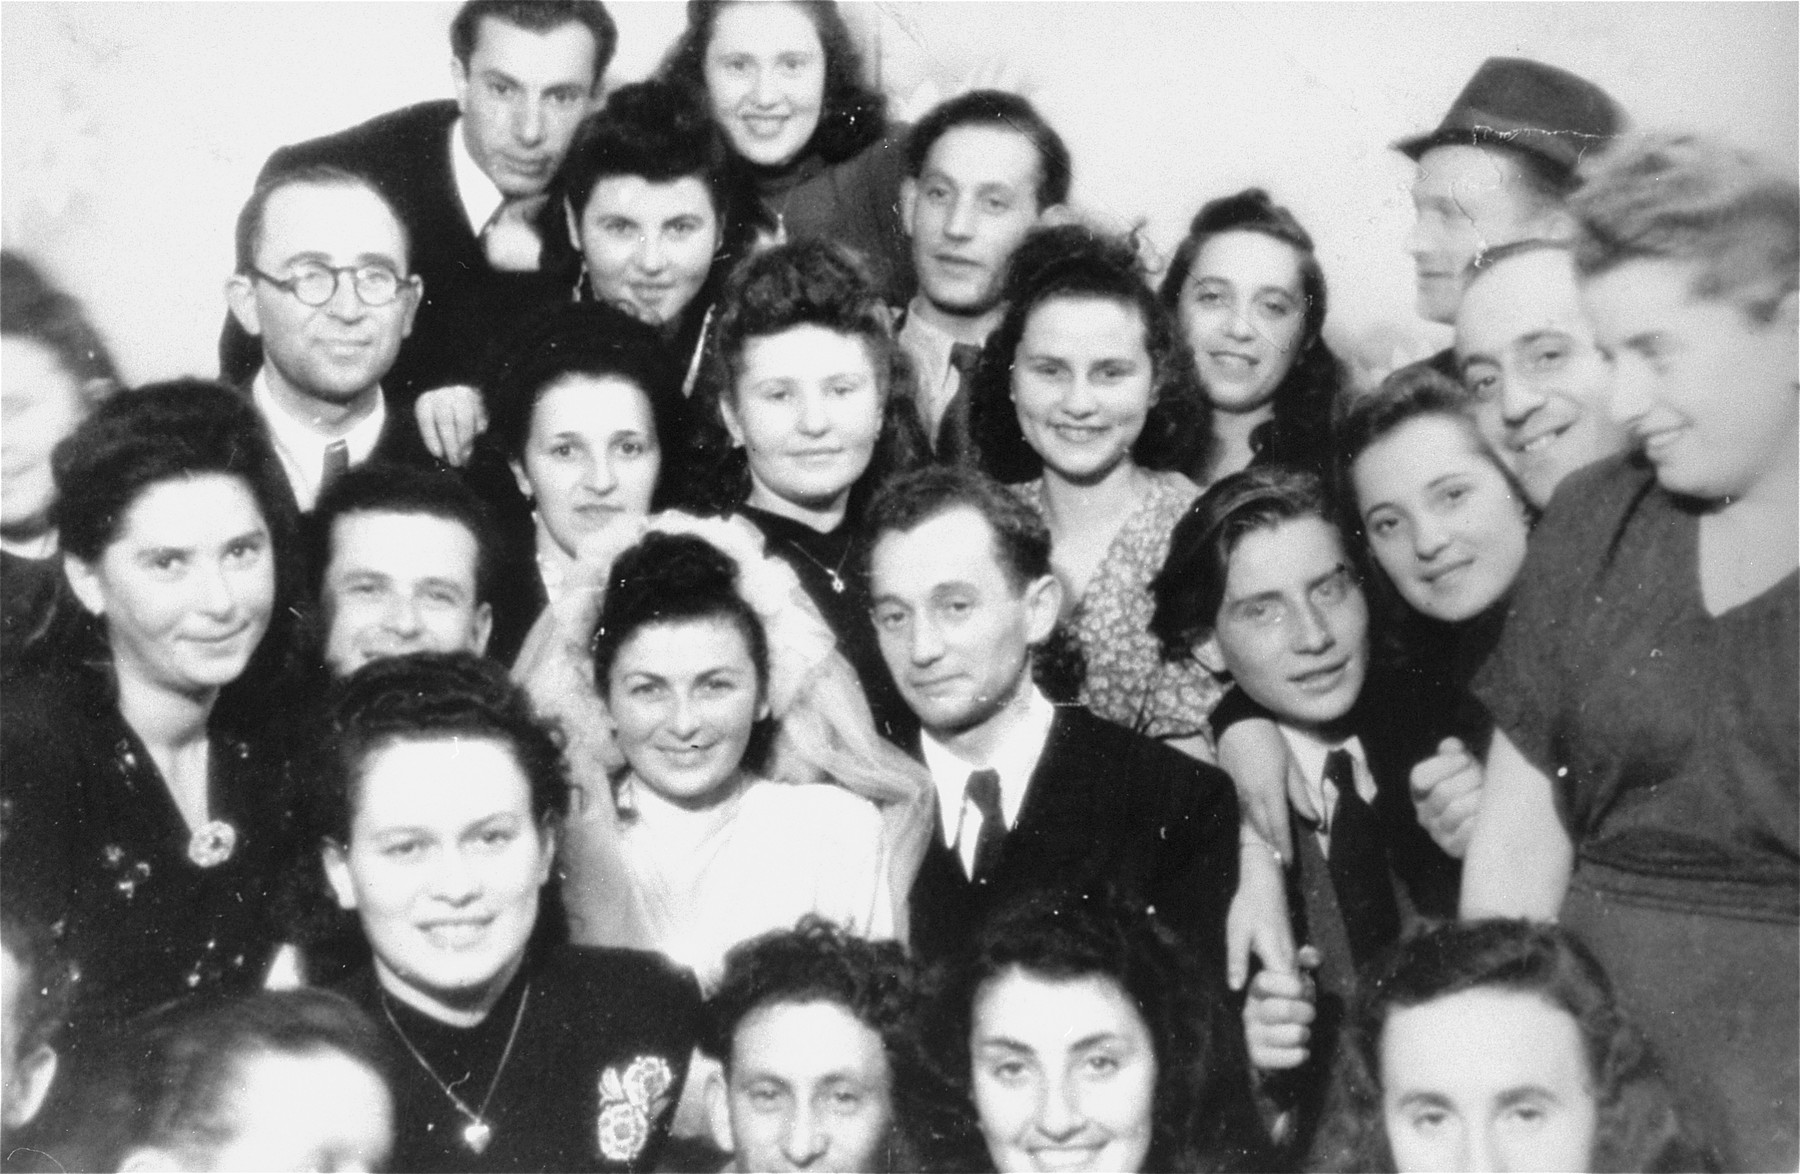 Friends celebrate the wedding of Fela Wasserman n the Schlachtensee displaced persons camp.    Also pictured are Goldi Bimbad, Abraham Wasserman, Lusia Gliklich, Pepa Gold, Kaja Kuper, and Chumka Gleiberman.